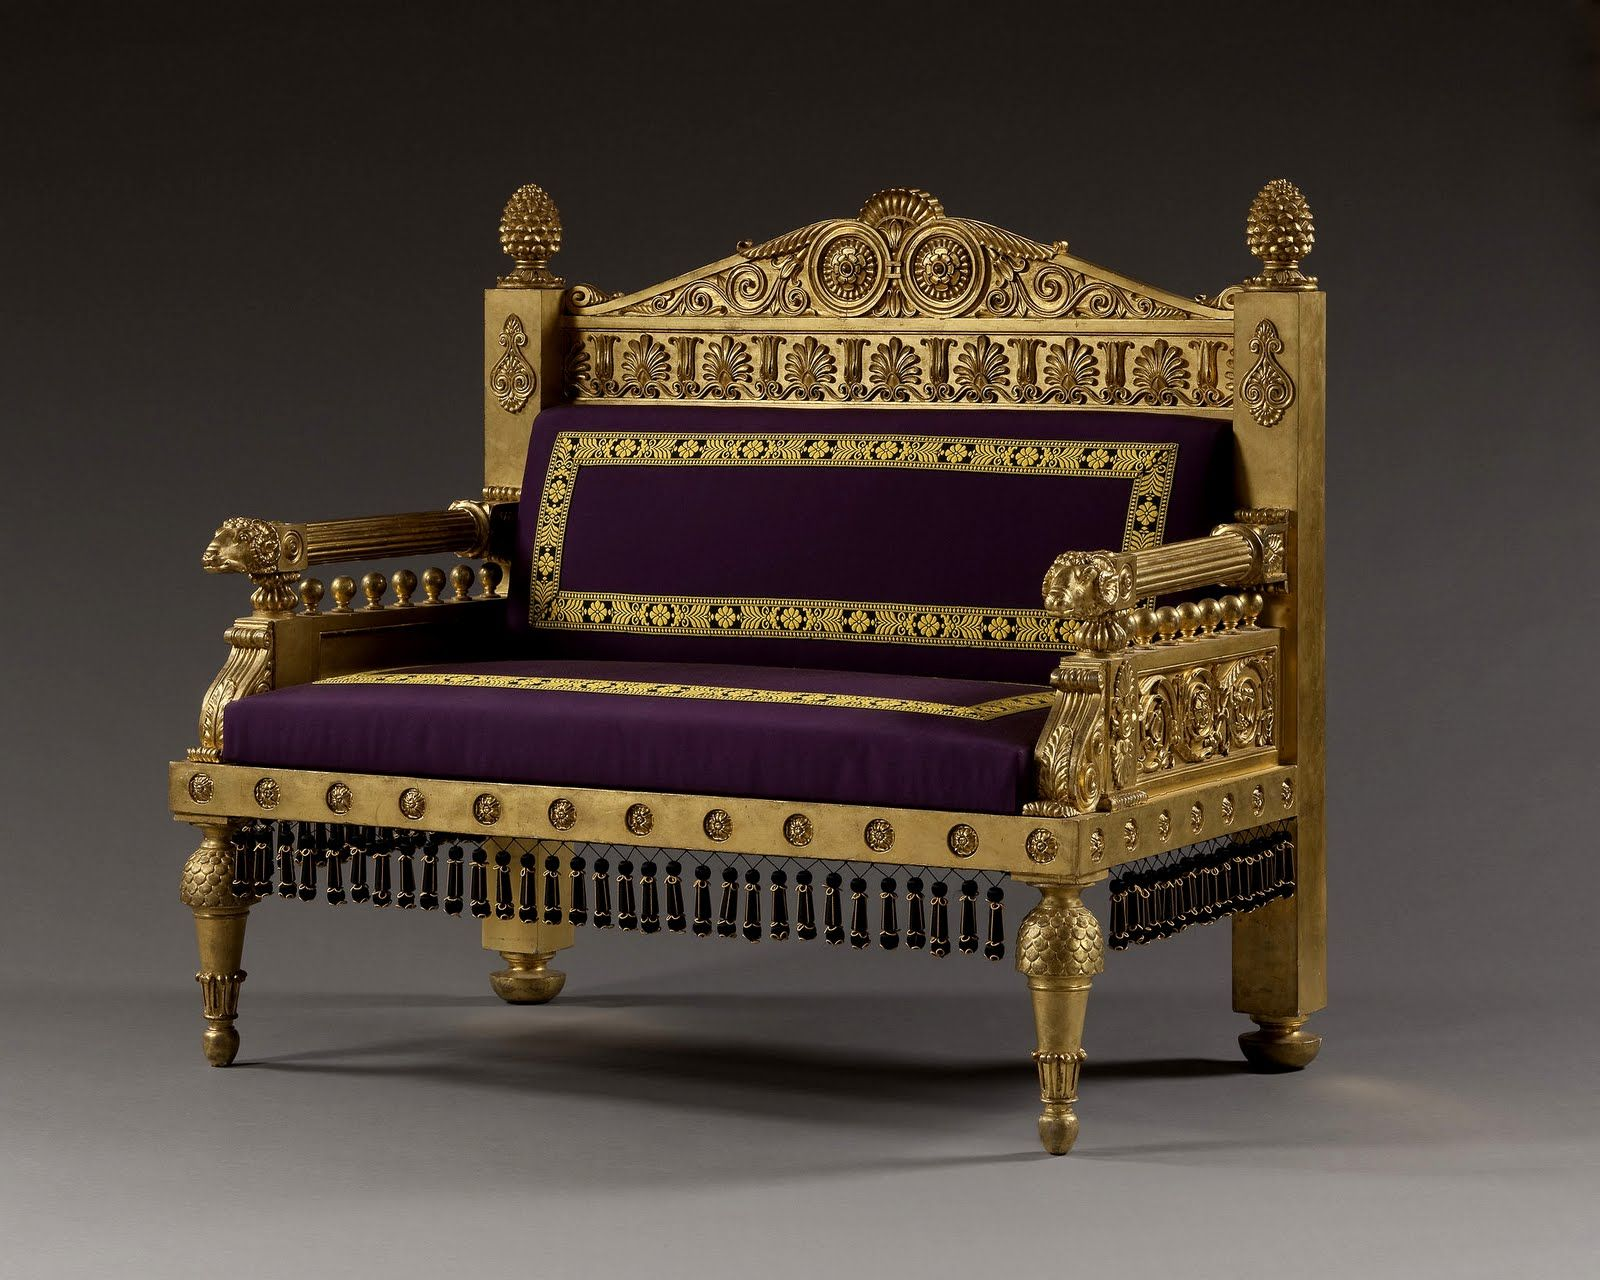 Thomas Hope Imperial Sofa English Regency And George Iv Pinterest # Thomas Hope Muebles